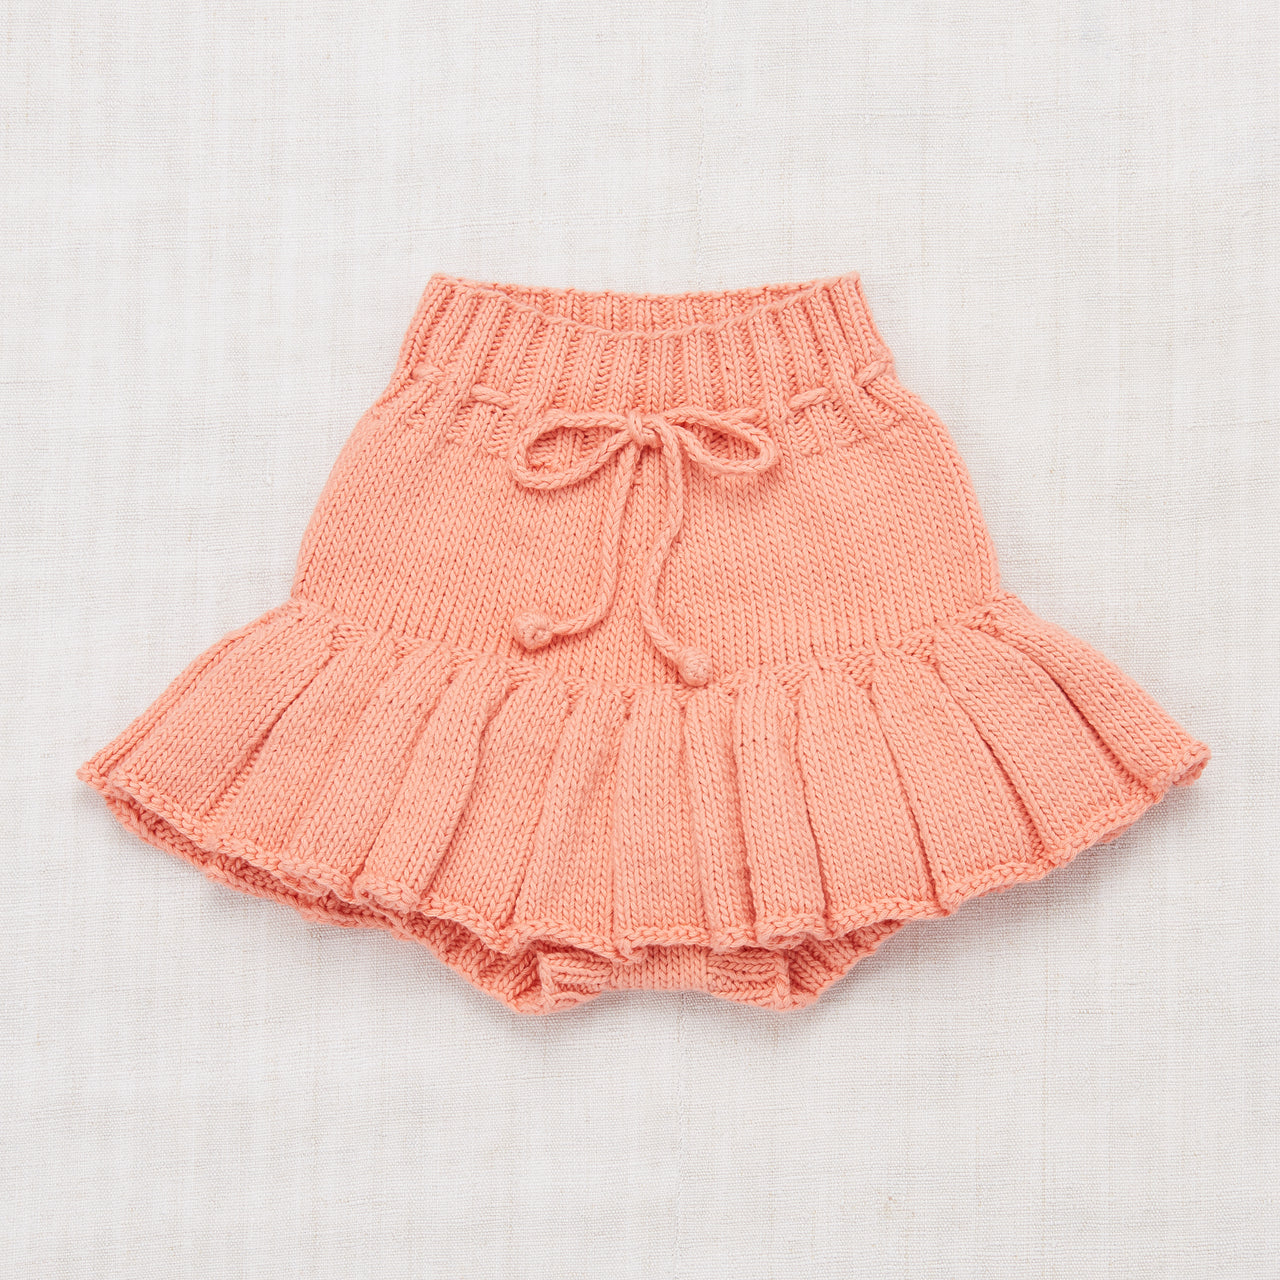 Skating Pond Skirt - Coral